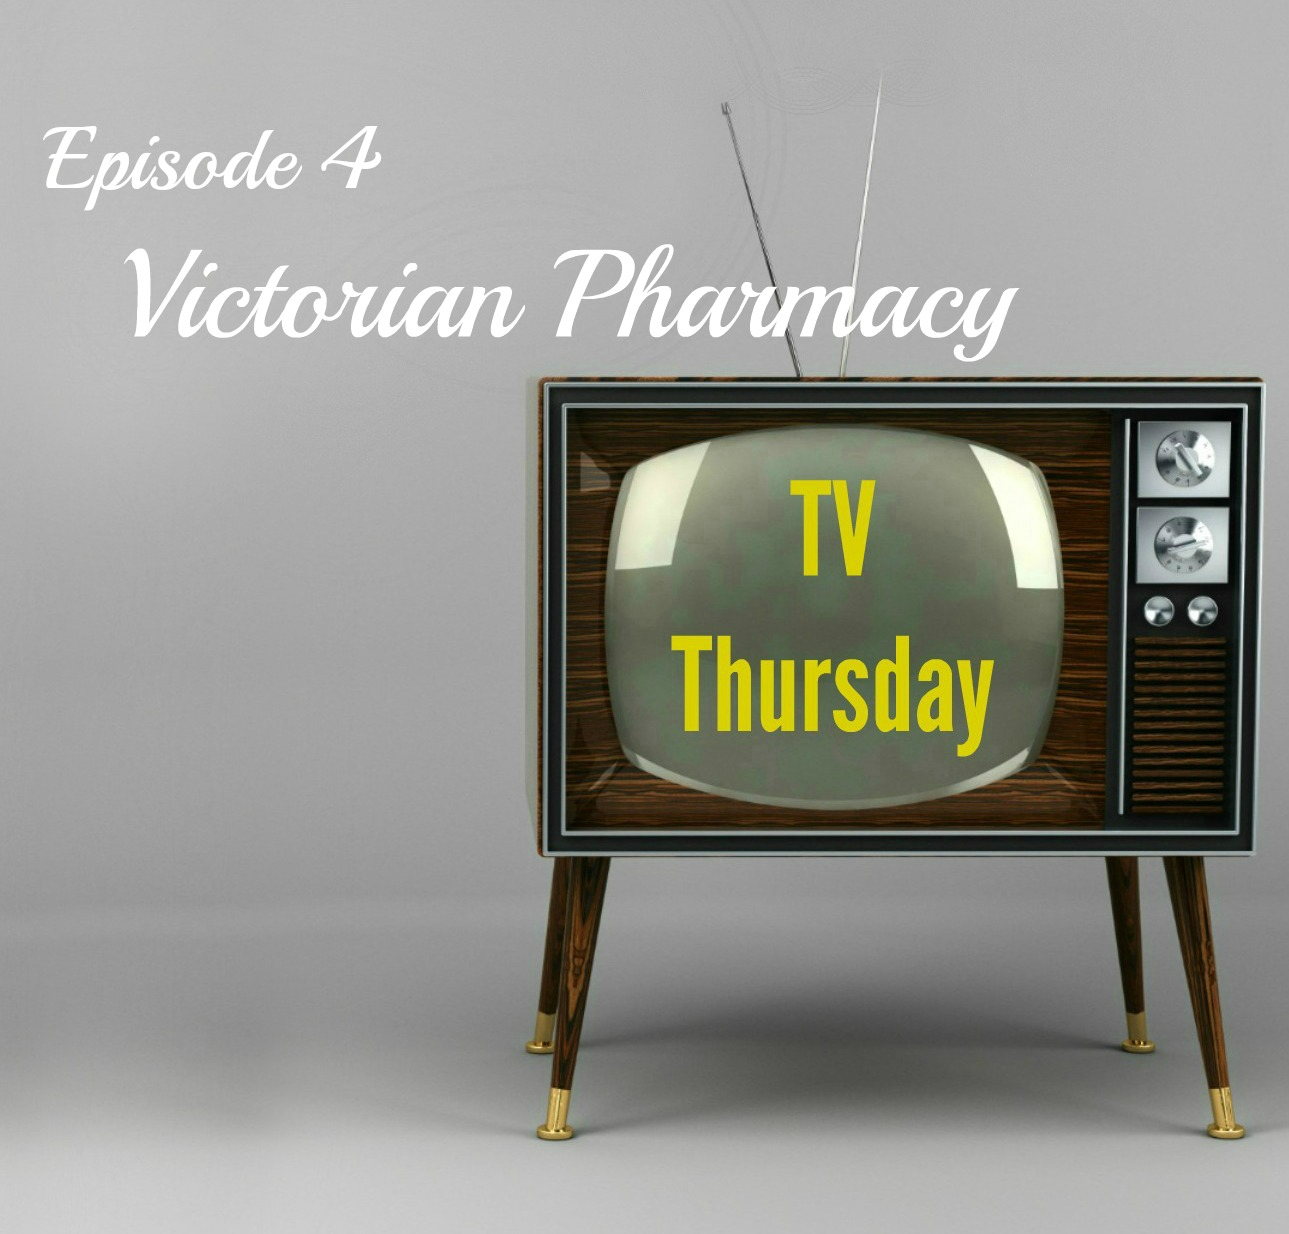 Victorian Pharmacy Episode 4 — TV Thursday